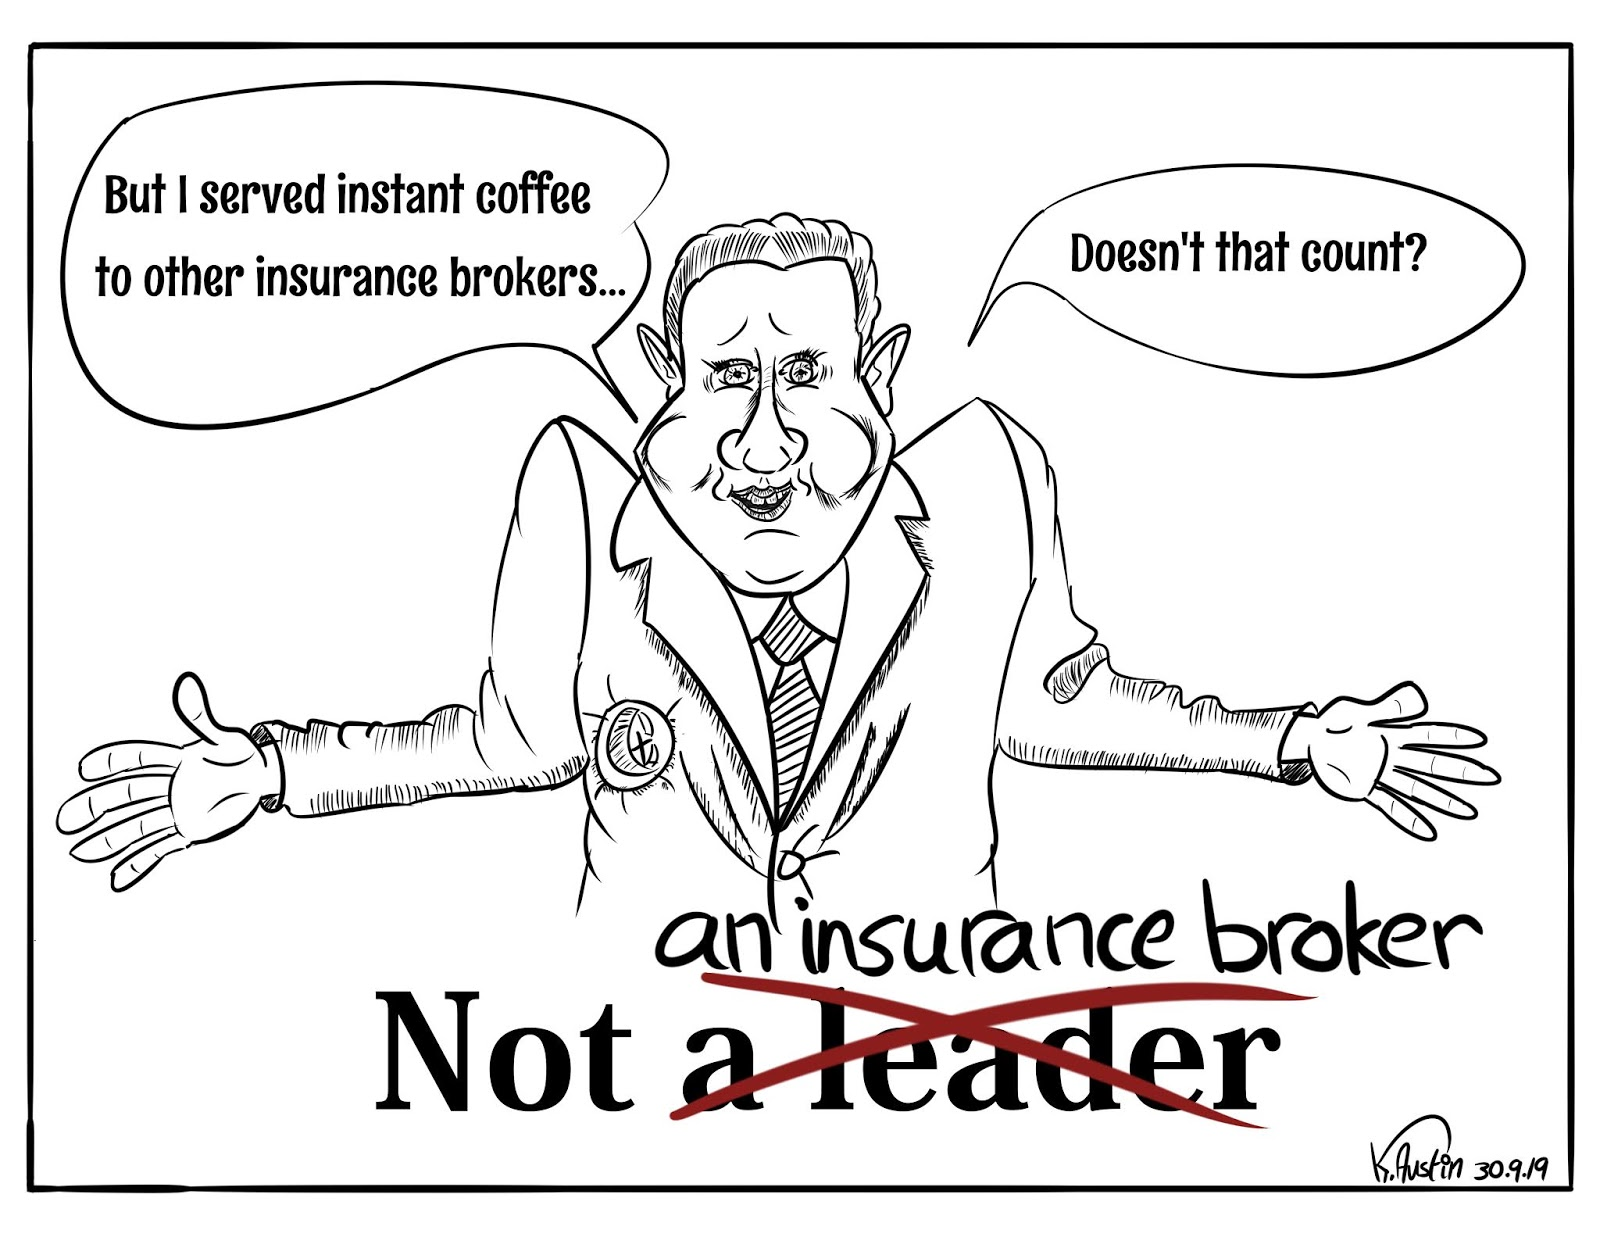 Freak's Own: Not an Insurance Broker